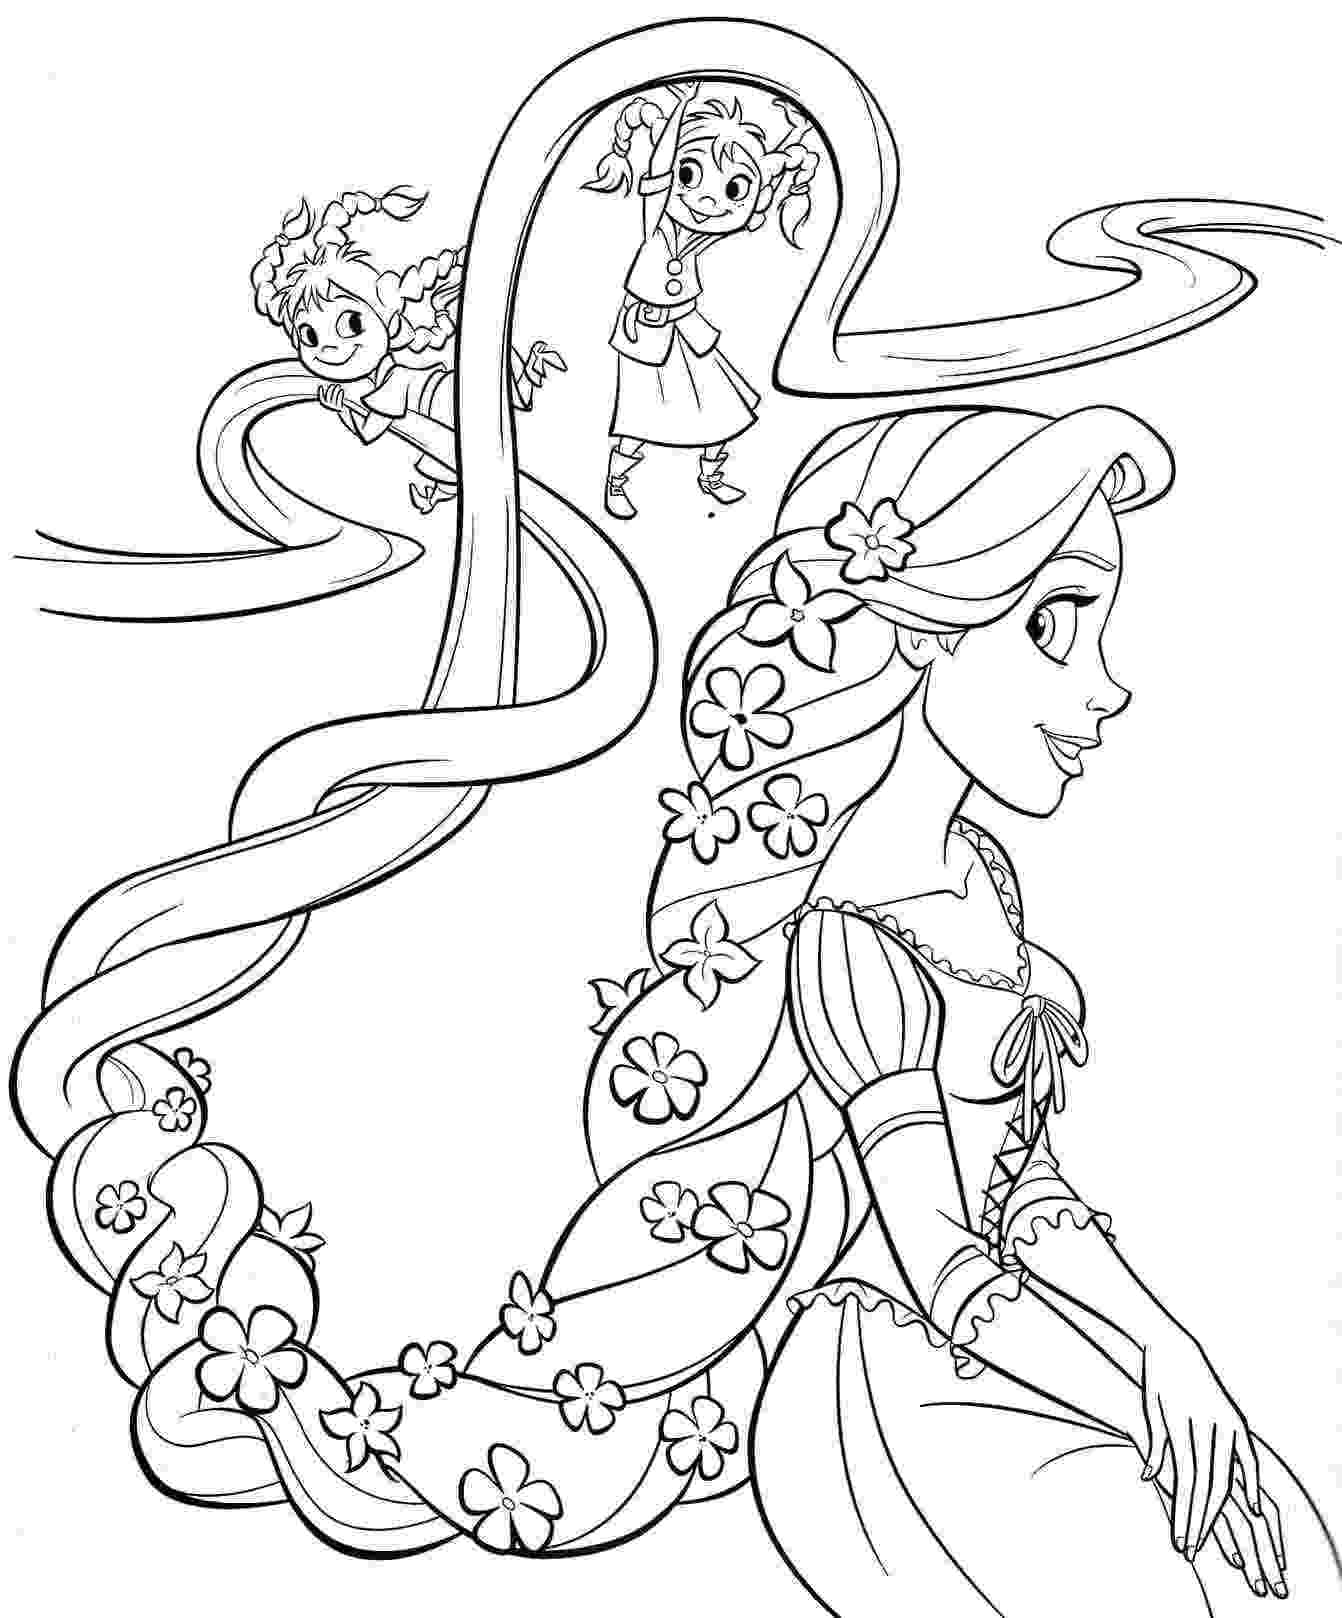 free disney princess coloring pages printable free disney princess rapunzel coloring sheets free disney princess pages coloring